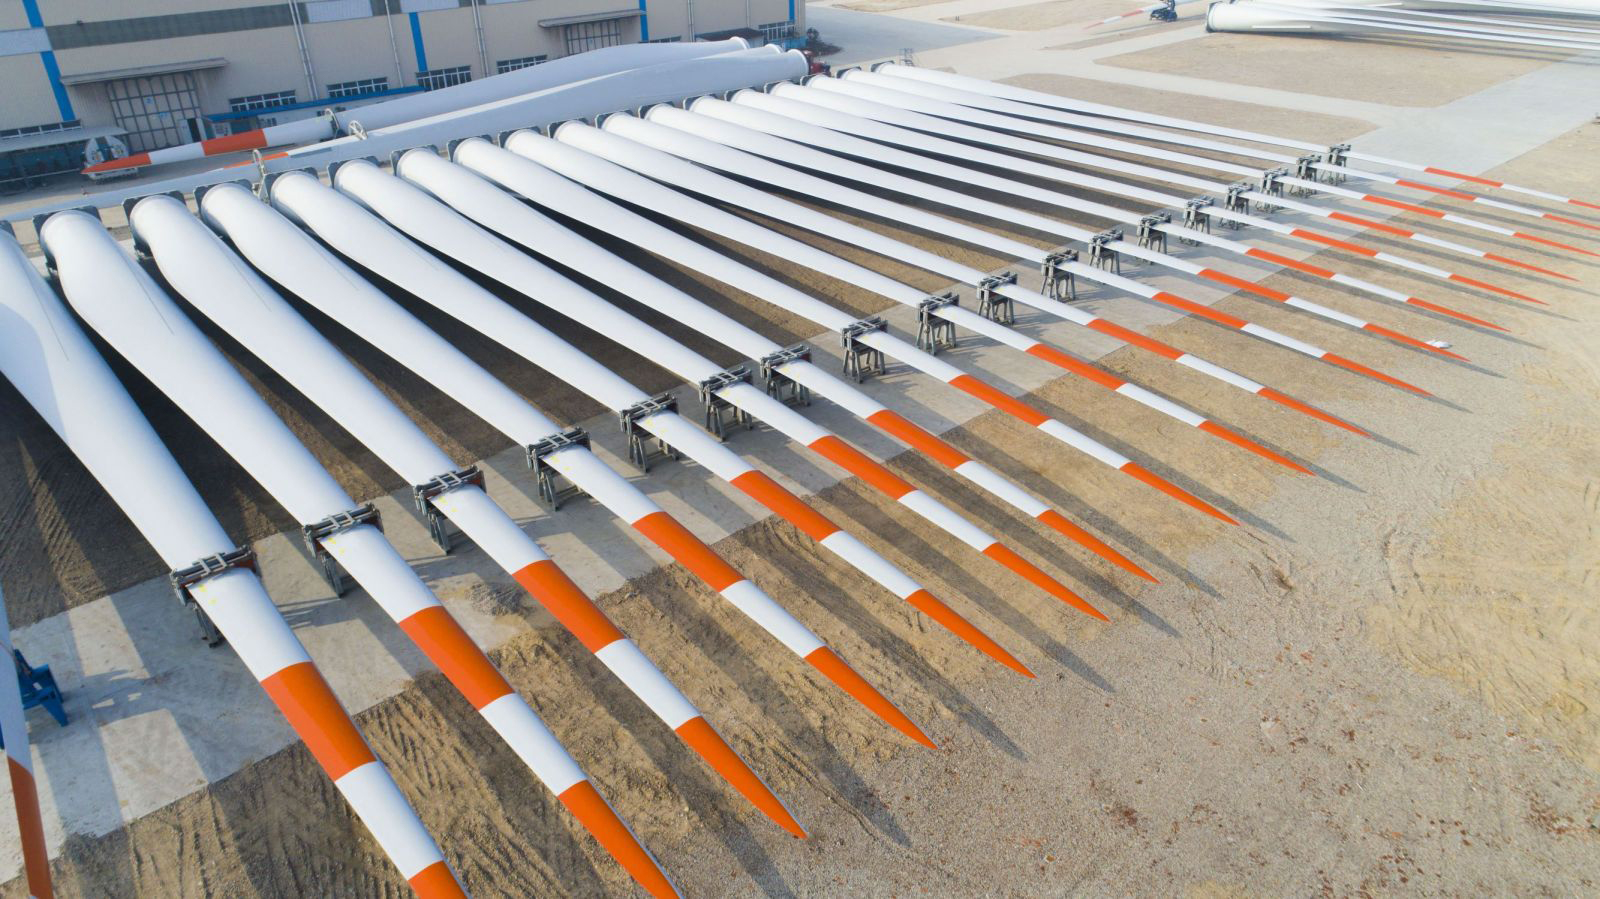 Wind Turbine blades after production (Source: Damon Hong)